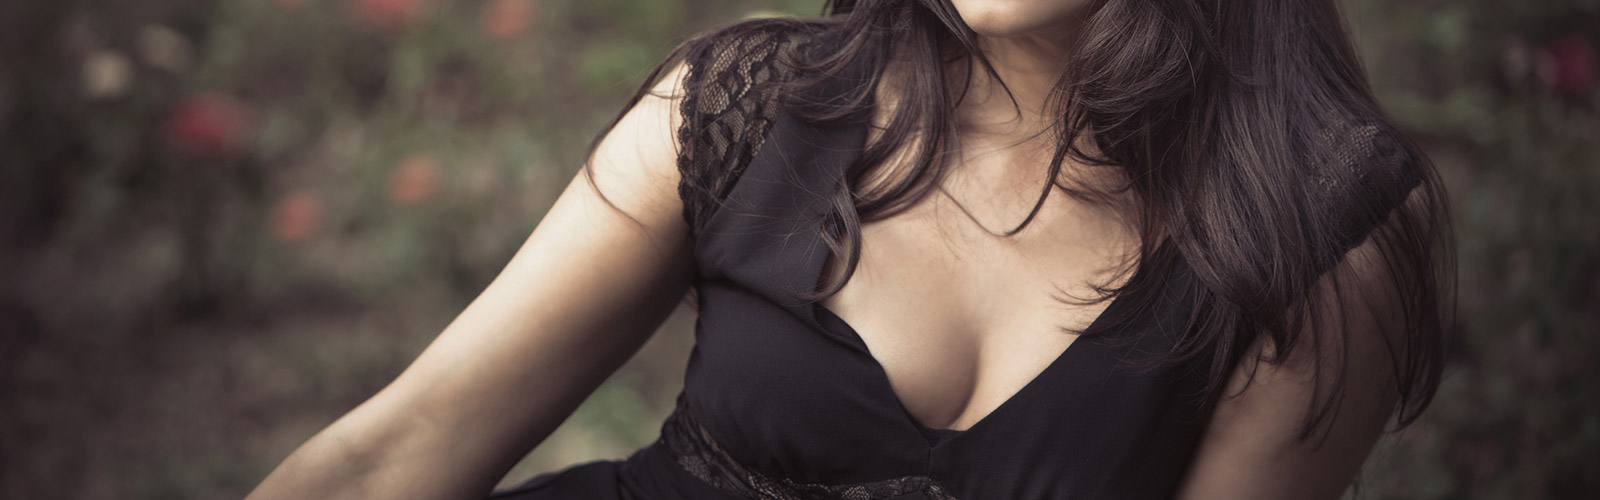 Breast Enhancement and Breast Reconstruction